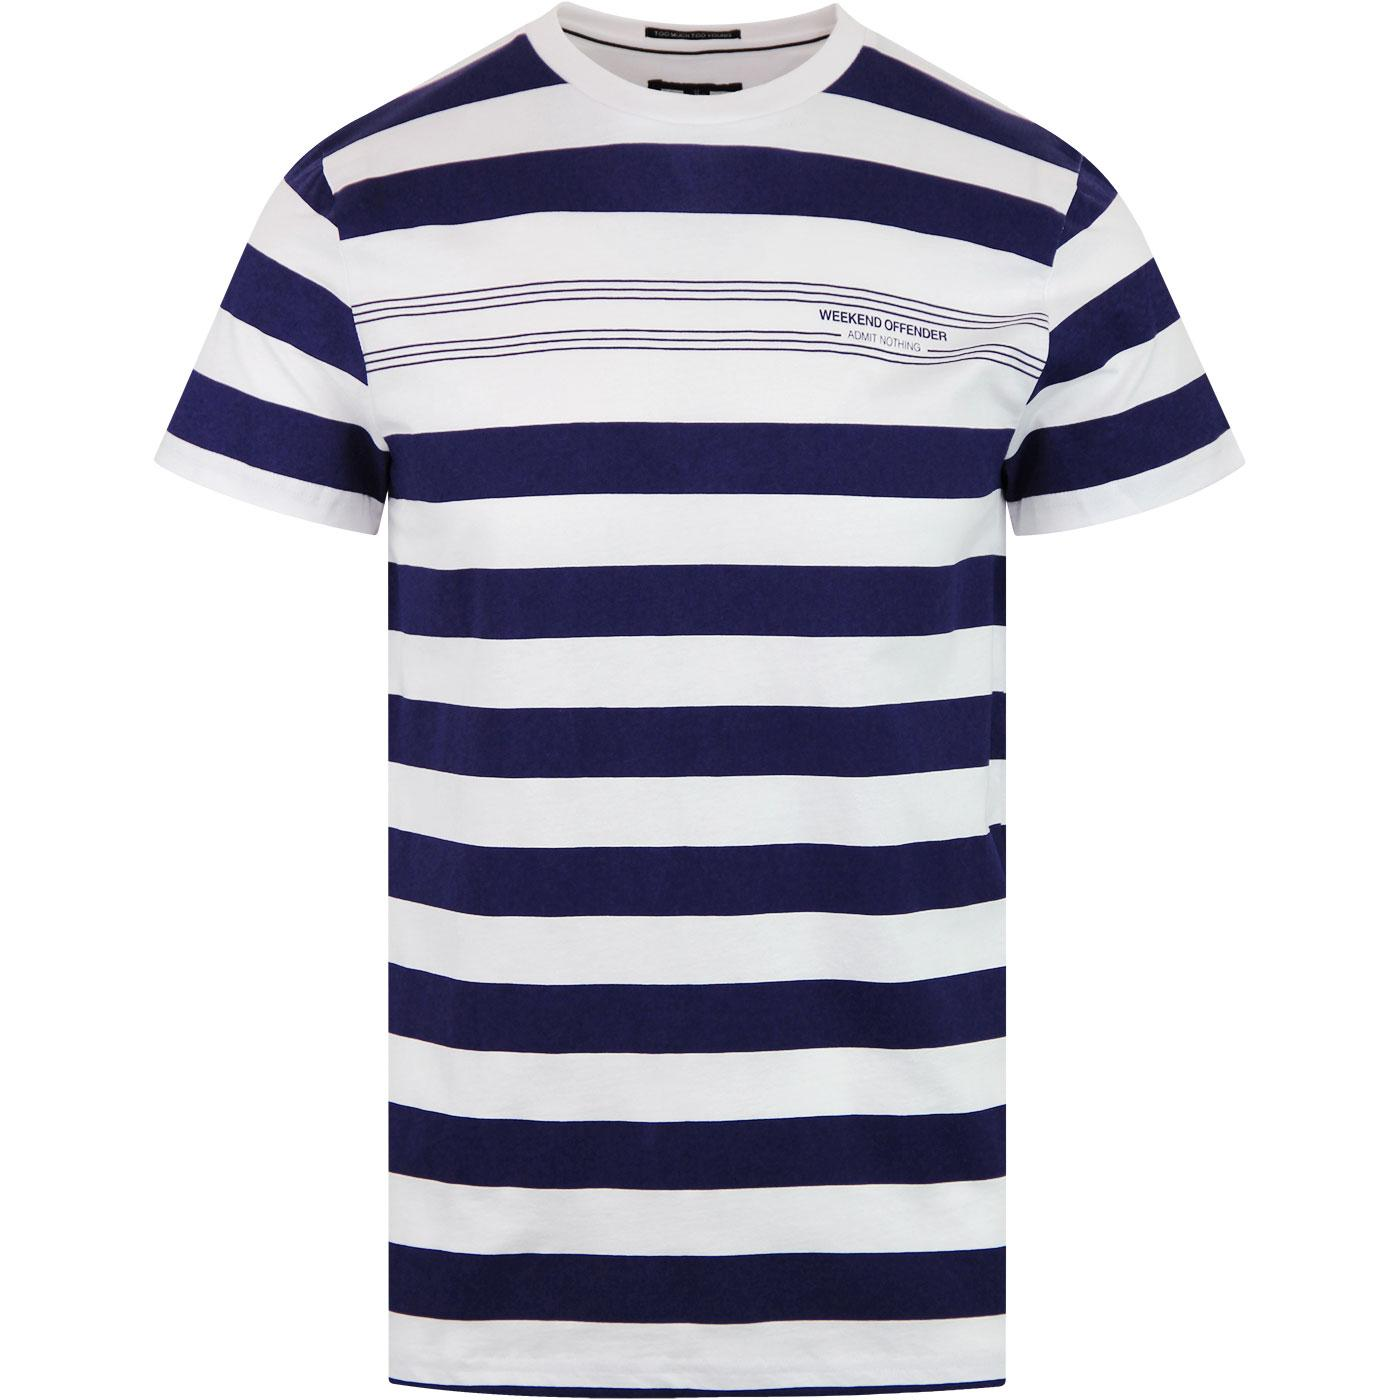 Stripes WEEKEND OFFENDER Retro Stripe Tee WHITE